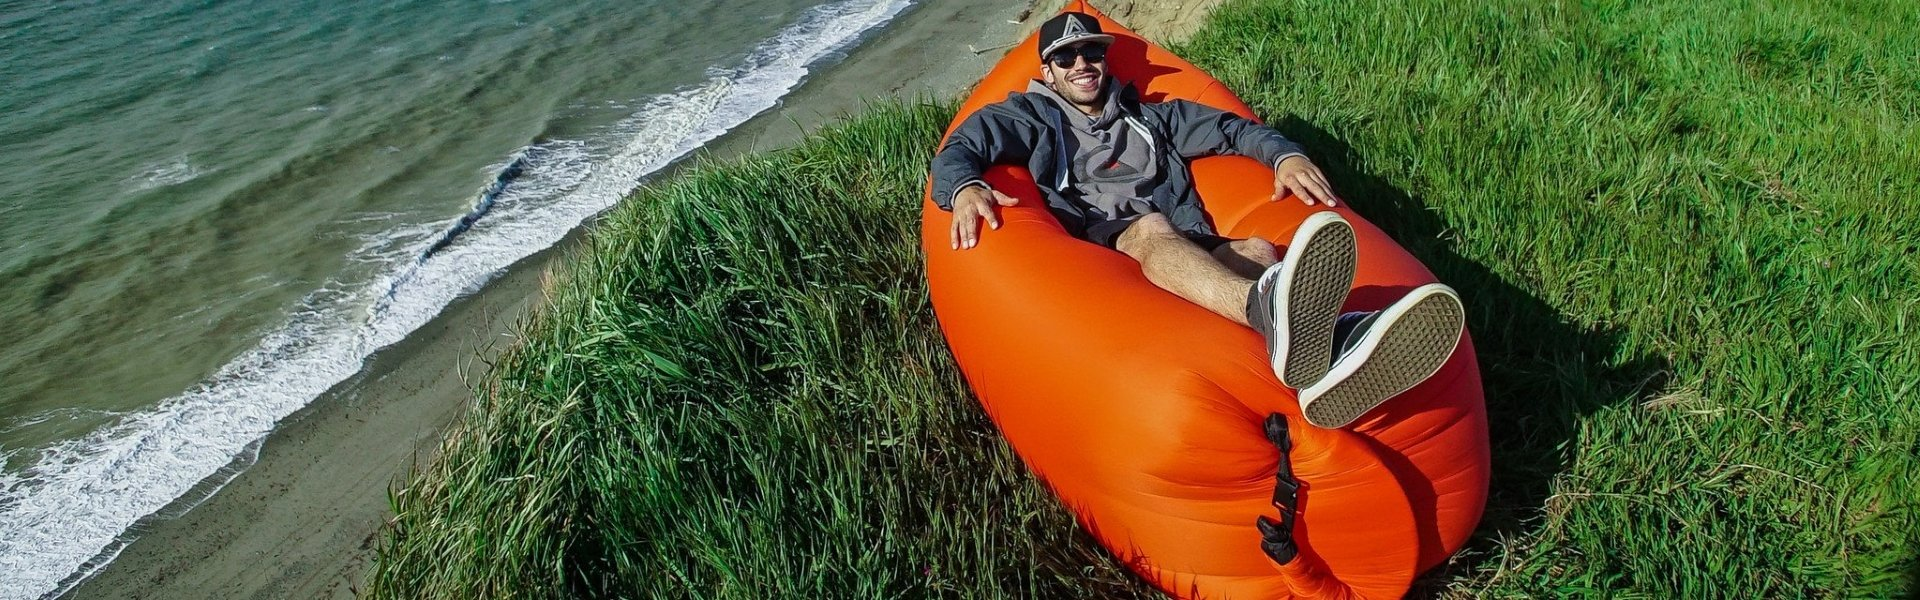 Best Inflatable Loungers Reviewed in Detail